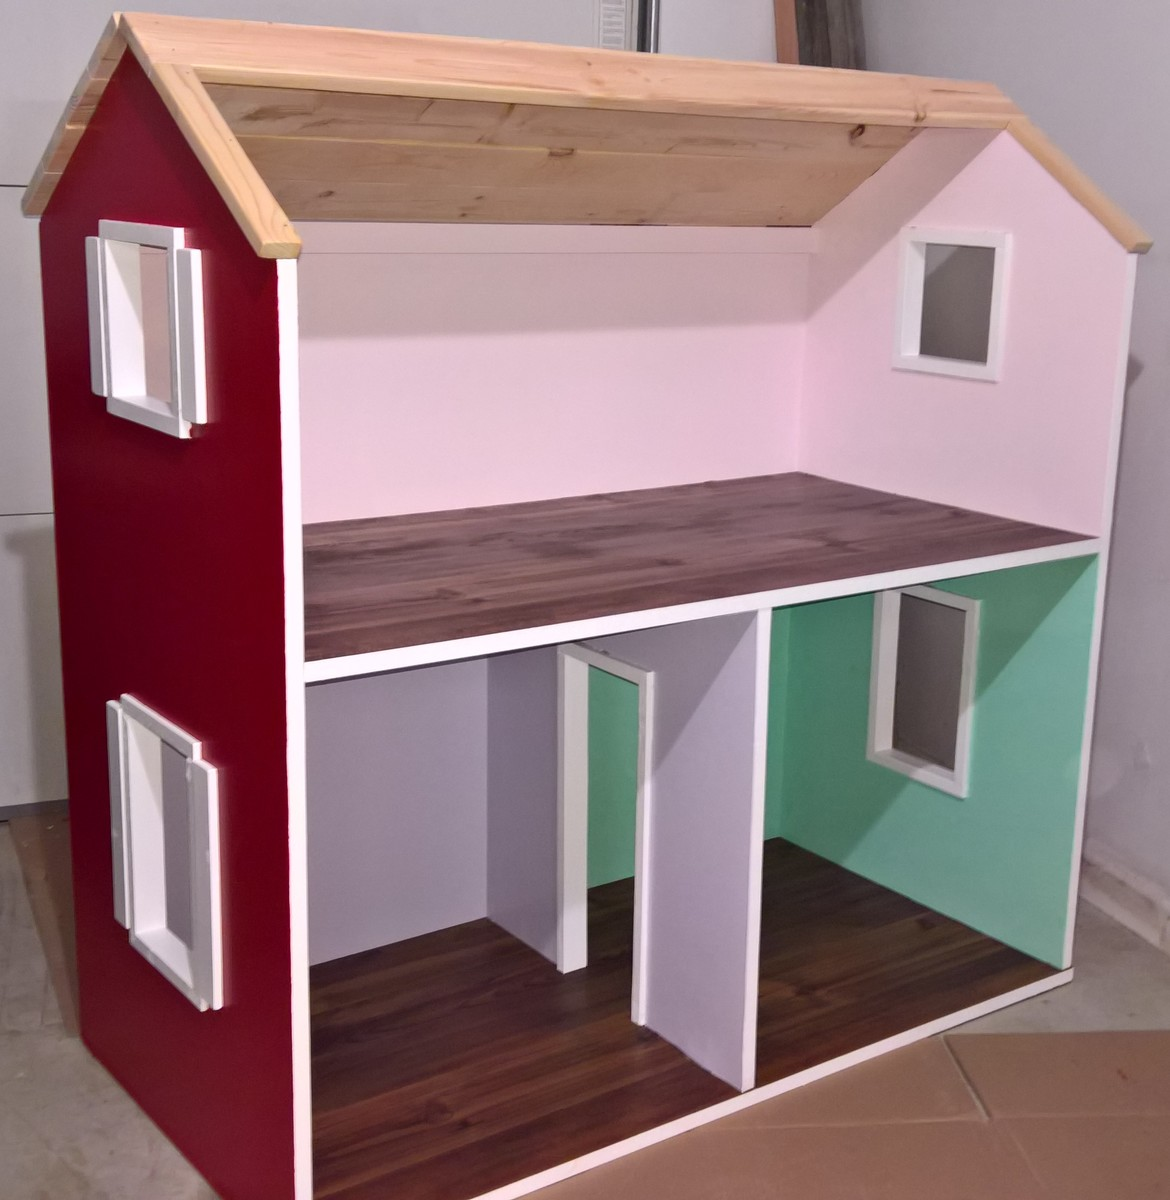 18 inch doll chair diy rentals san antonio ana white 2 story american girl dollhouse projects